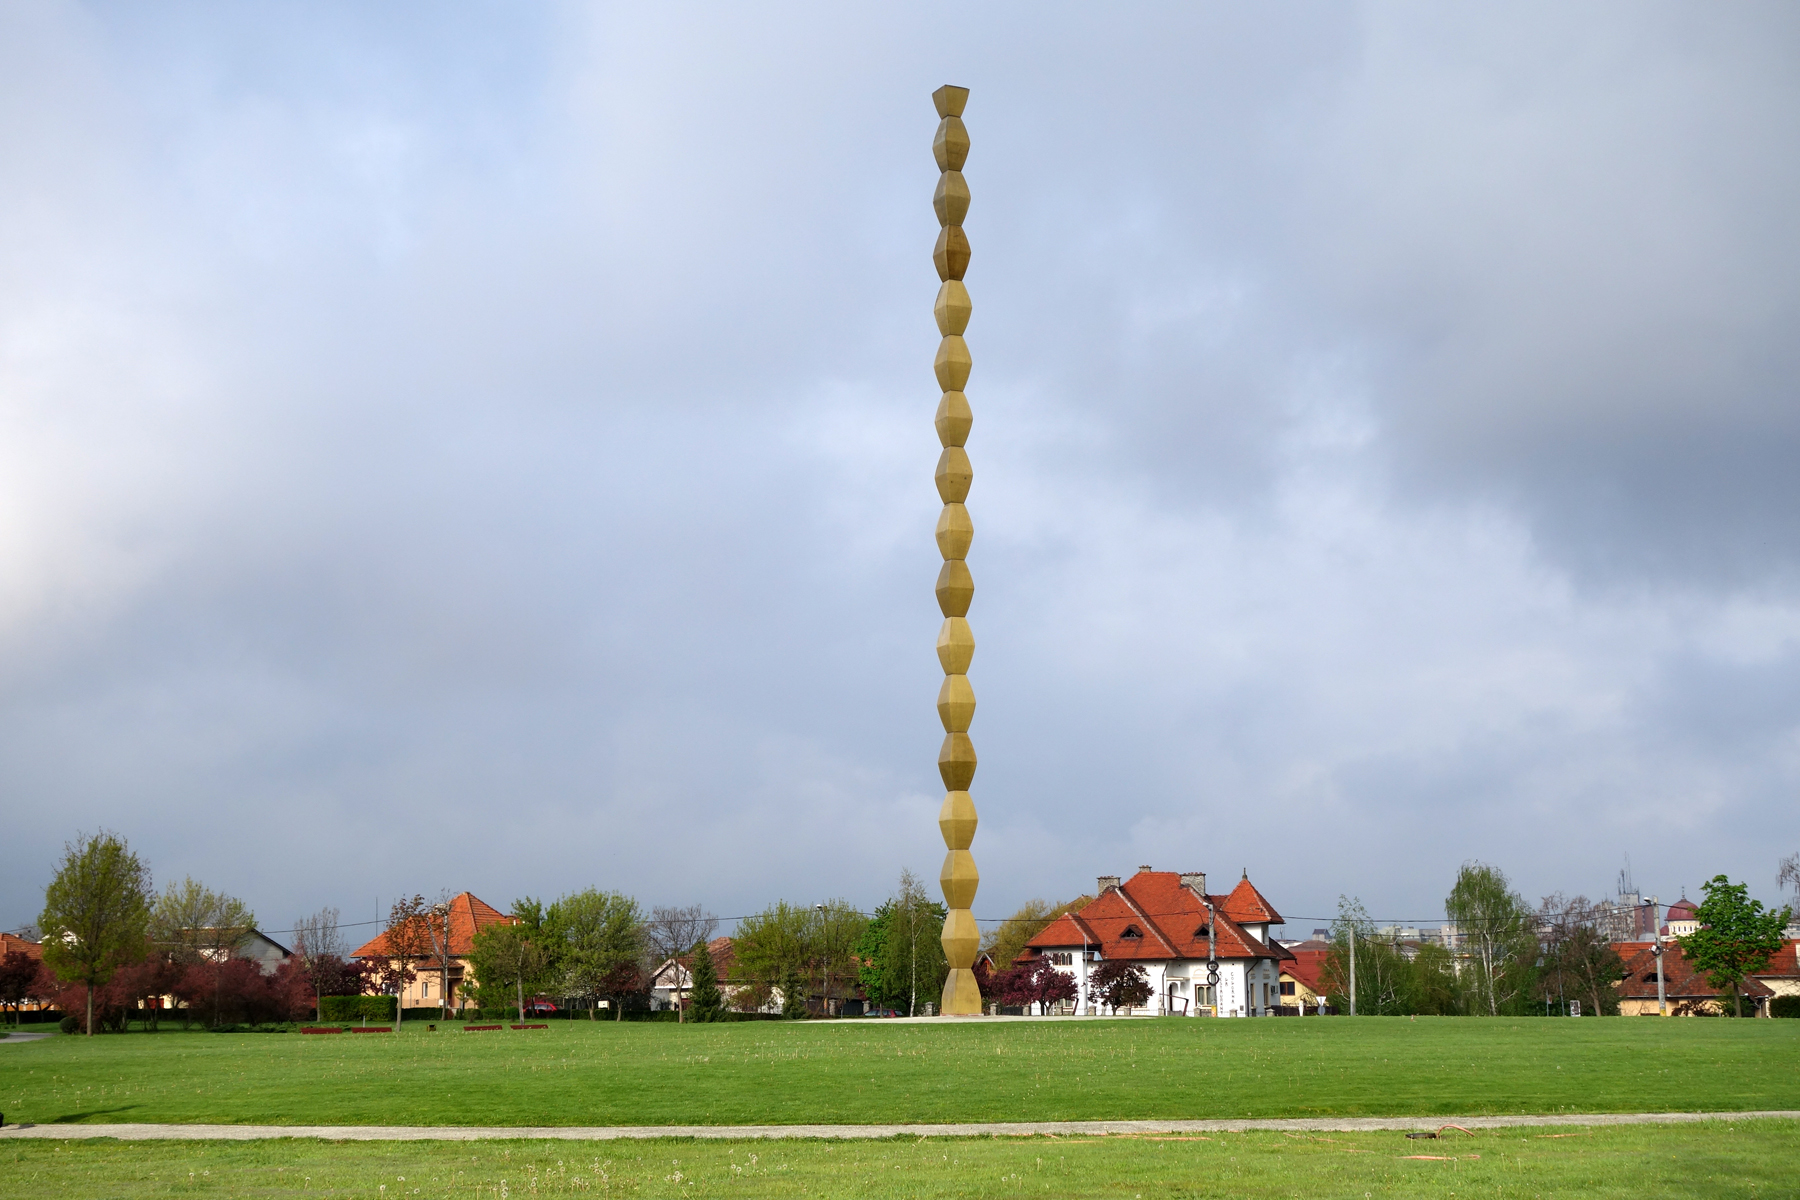 Brancusi's Endless Column ensemble (Romania, 1996 and 1998 Watch): American Express funding contributed to the conservation of the ensemble, bringing back attention to this memorial to those who died defending Targu-Jiu during World War I.